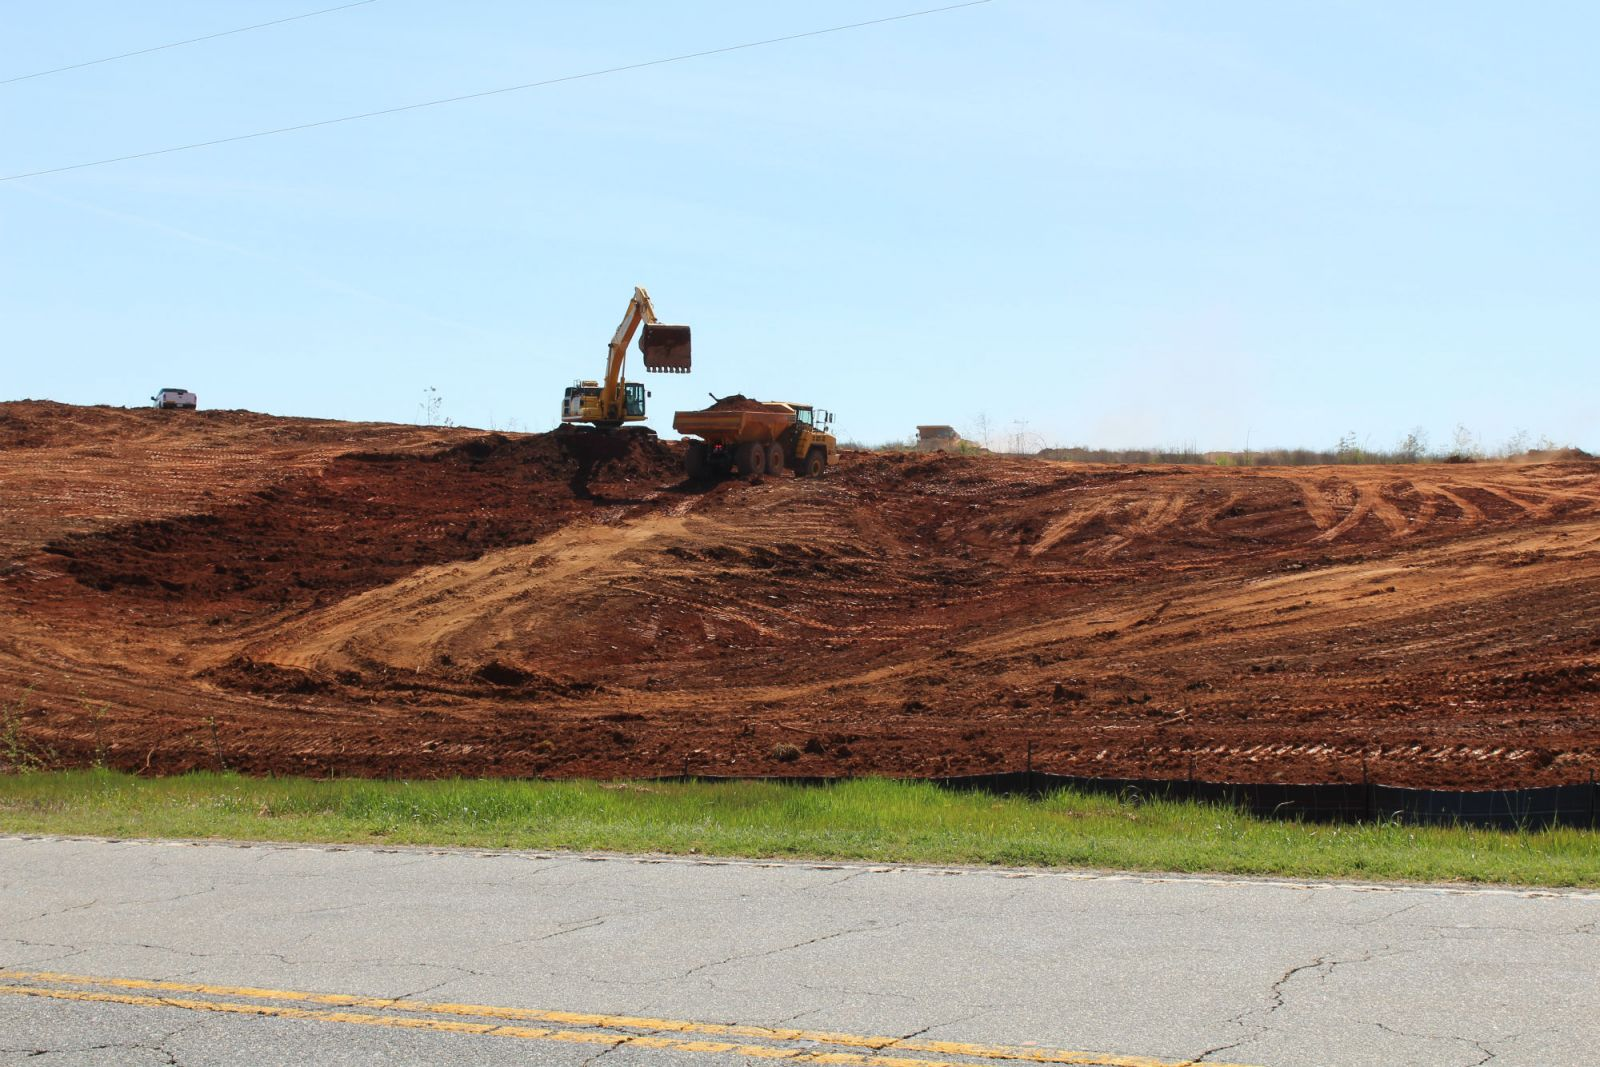 About 1.1 million cubic yards of dirt are being moved at the Oconee Industry and Technology Park to prepare the site for the new Tri-County Tech campus. (Photo/Provided)